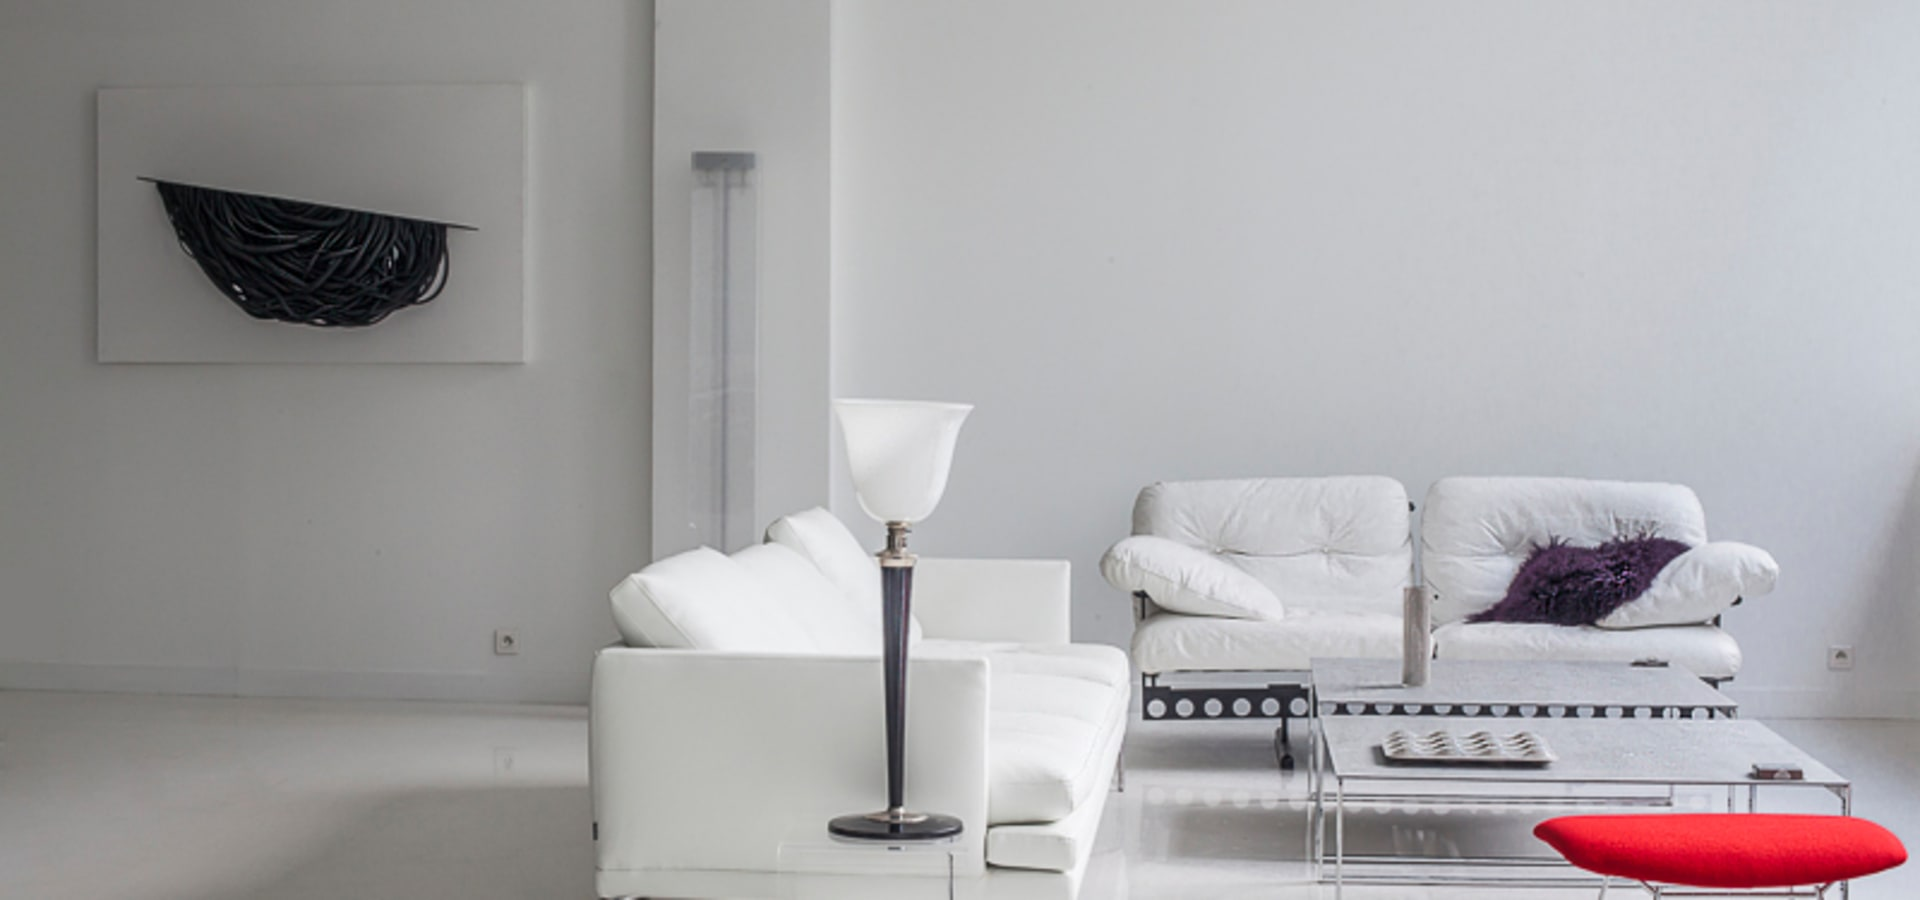 int rieurit s catherine vernet architectes d 39 int rieur paris sur homify. Black Bedroom Furniture Sets. Home Design Ideas